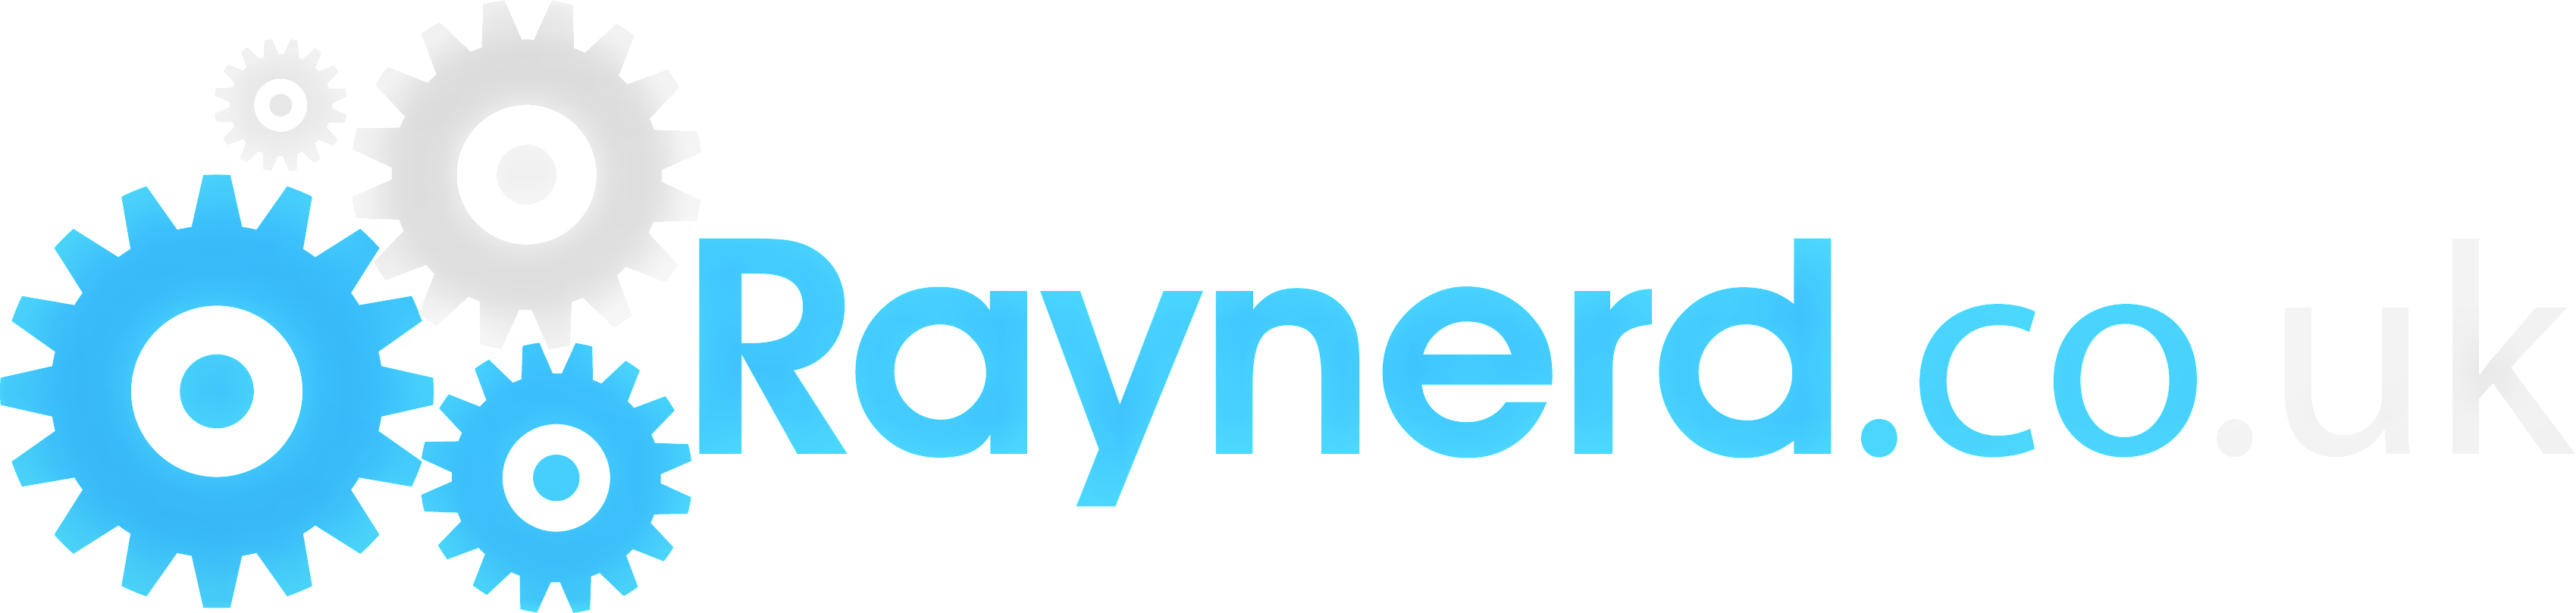 Raynerd.co.uk